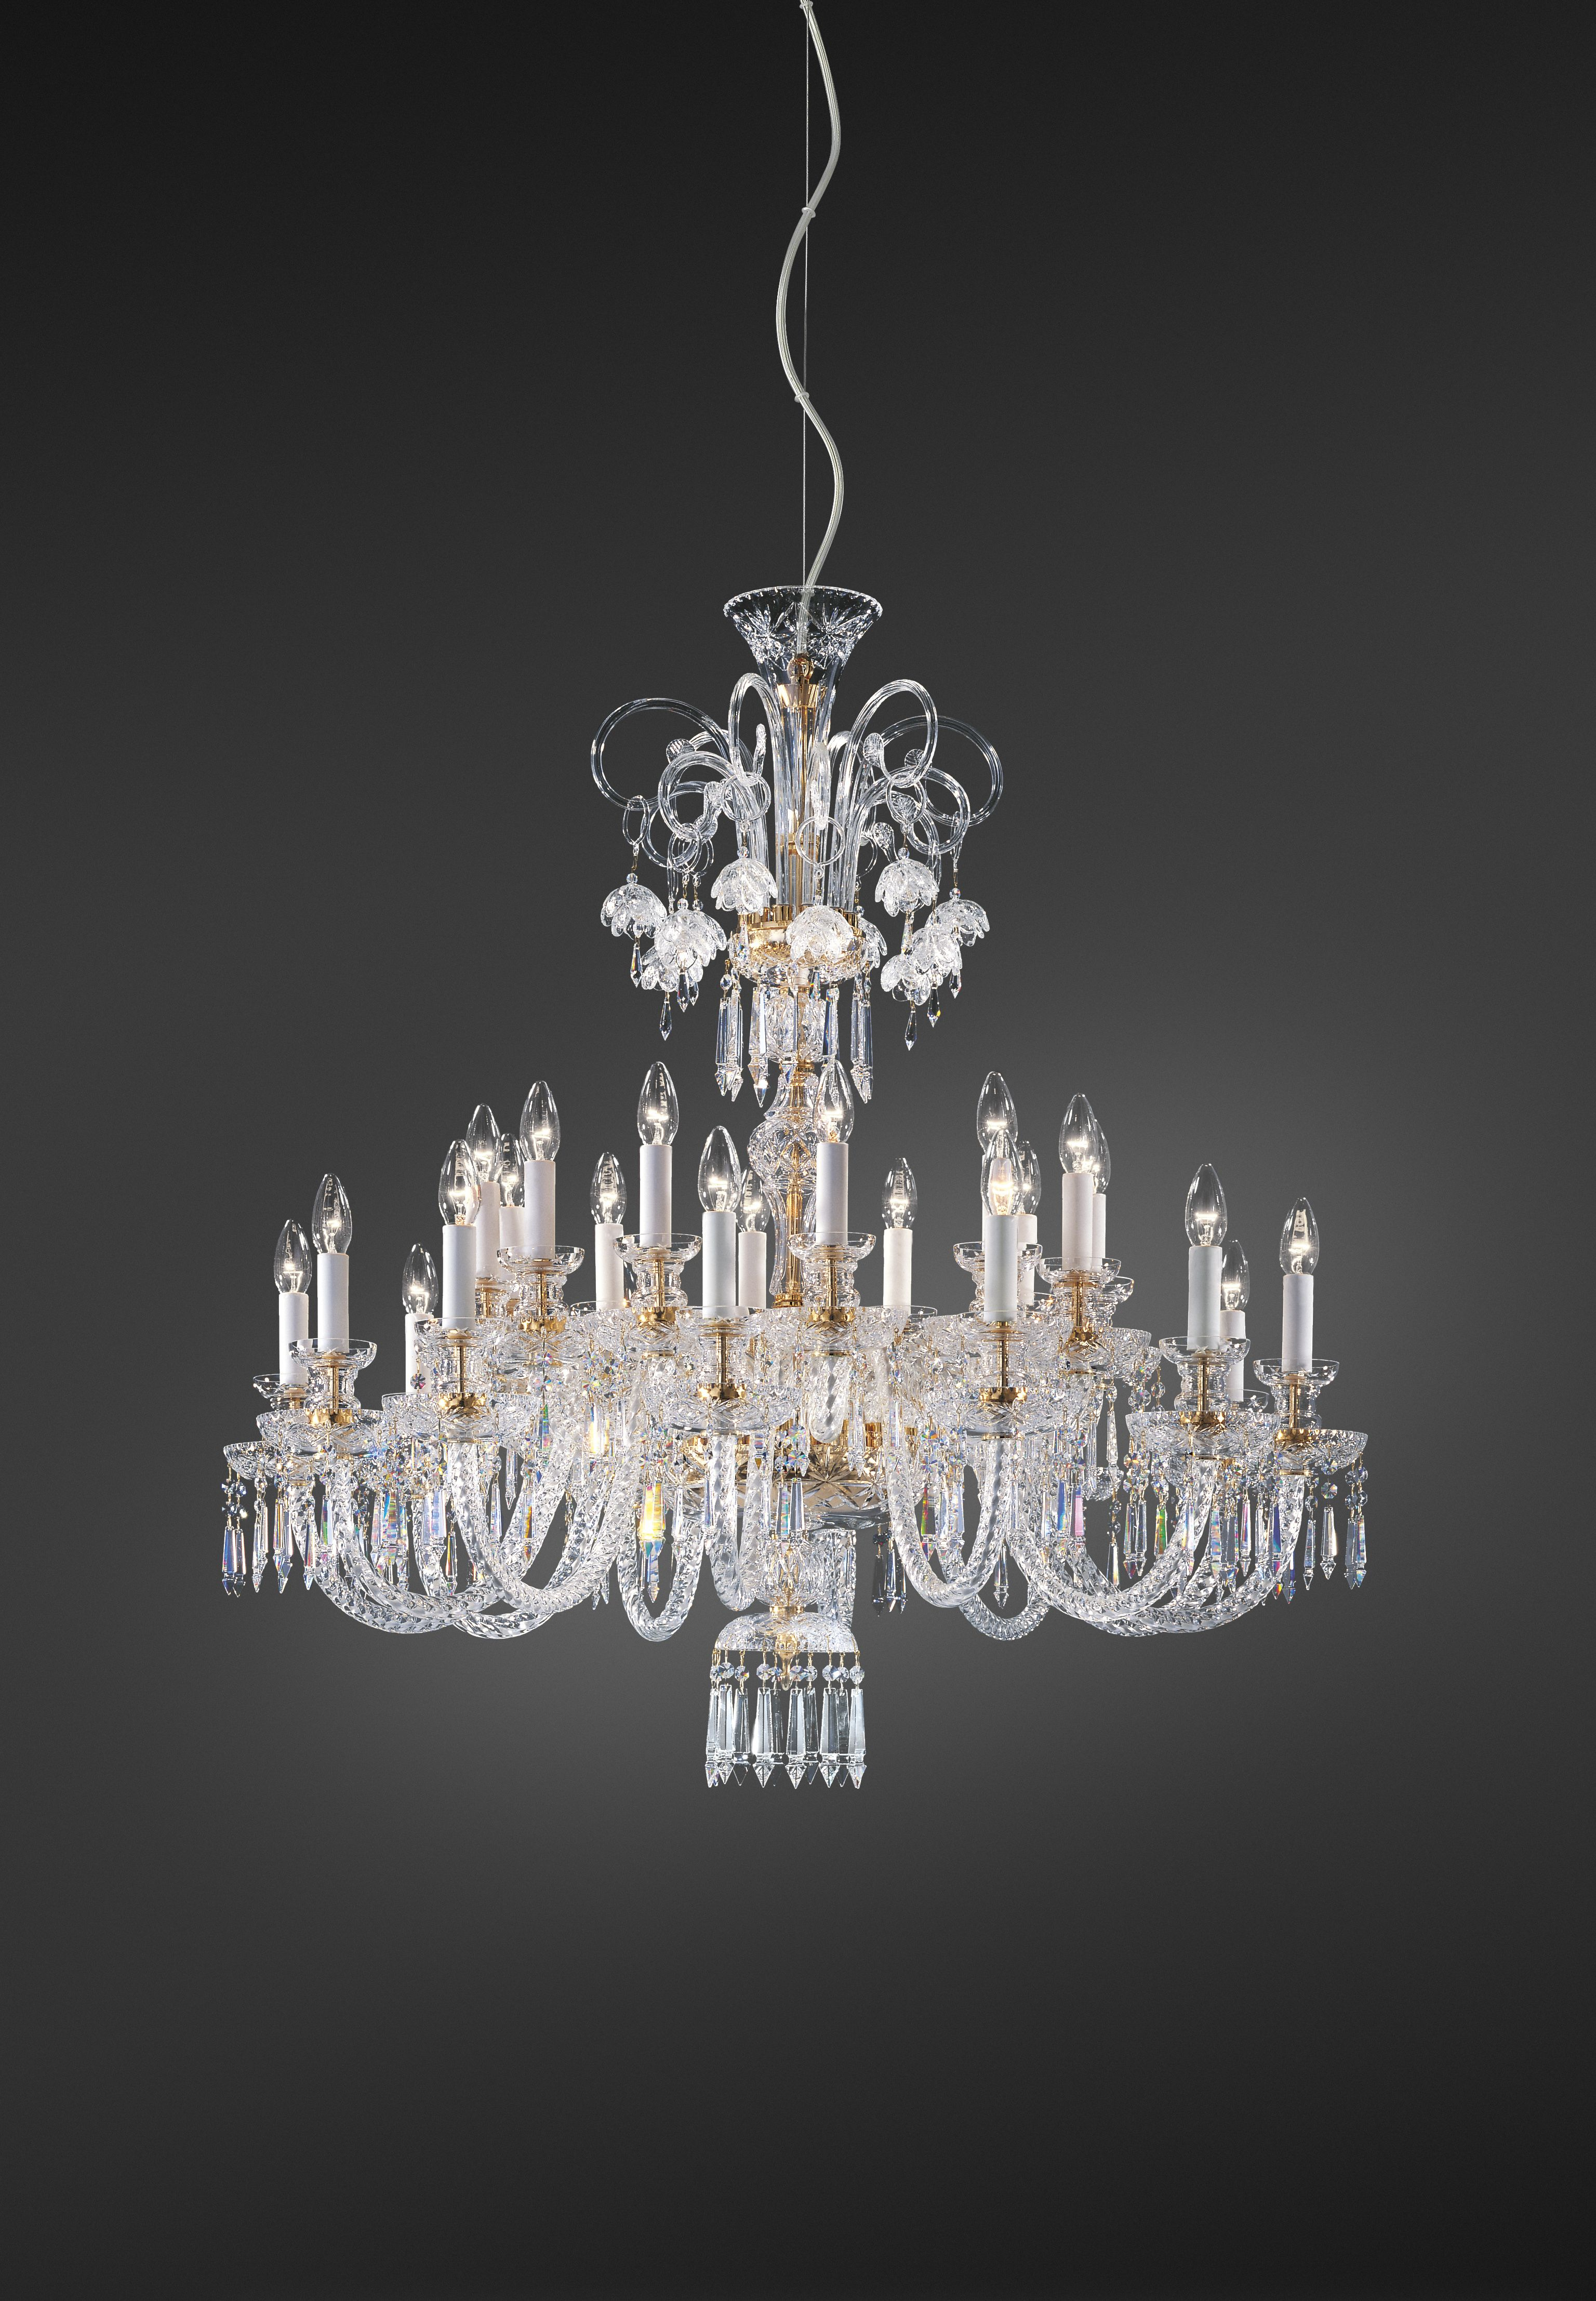 239 Chandelier in carved crystal and glass metal with gold